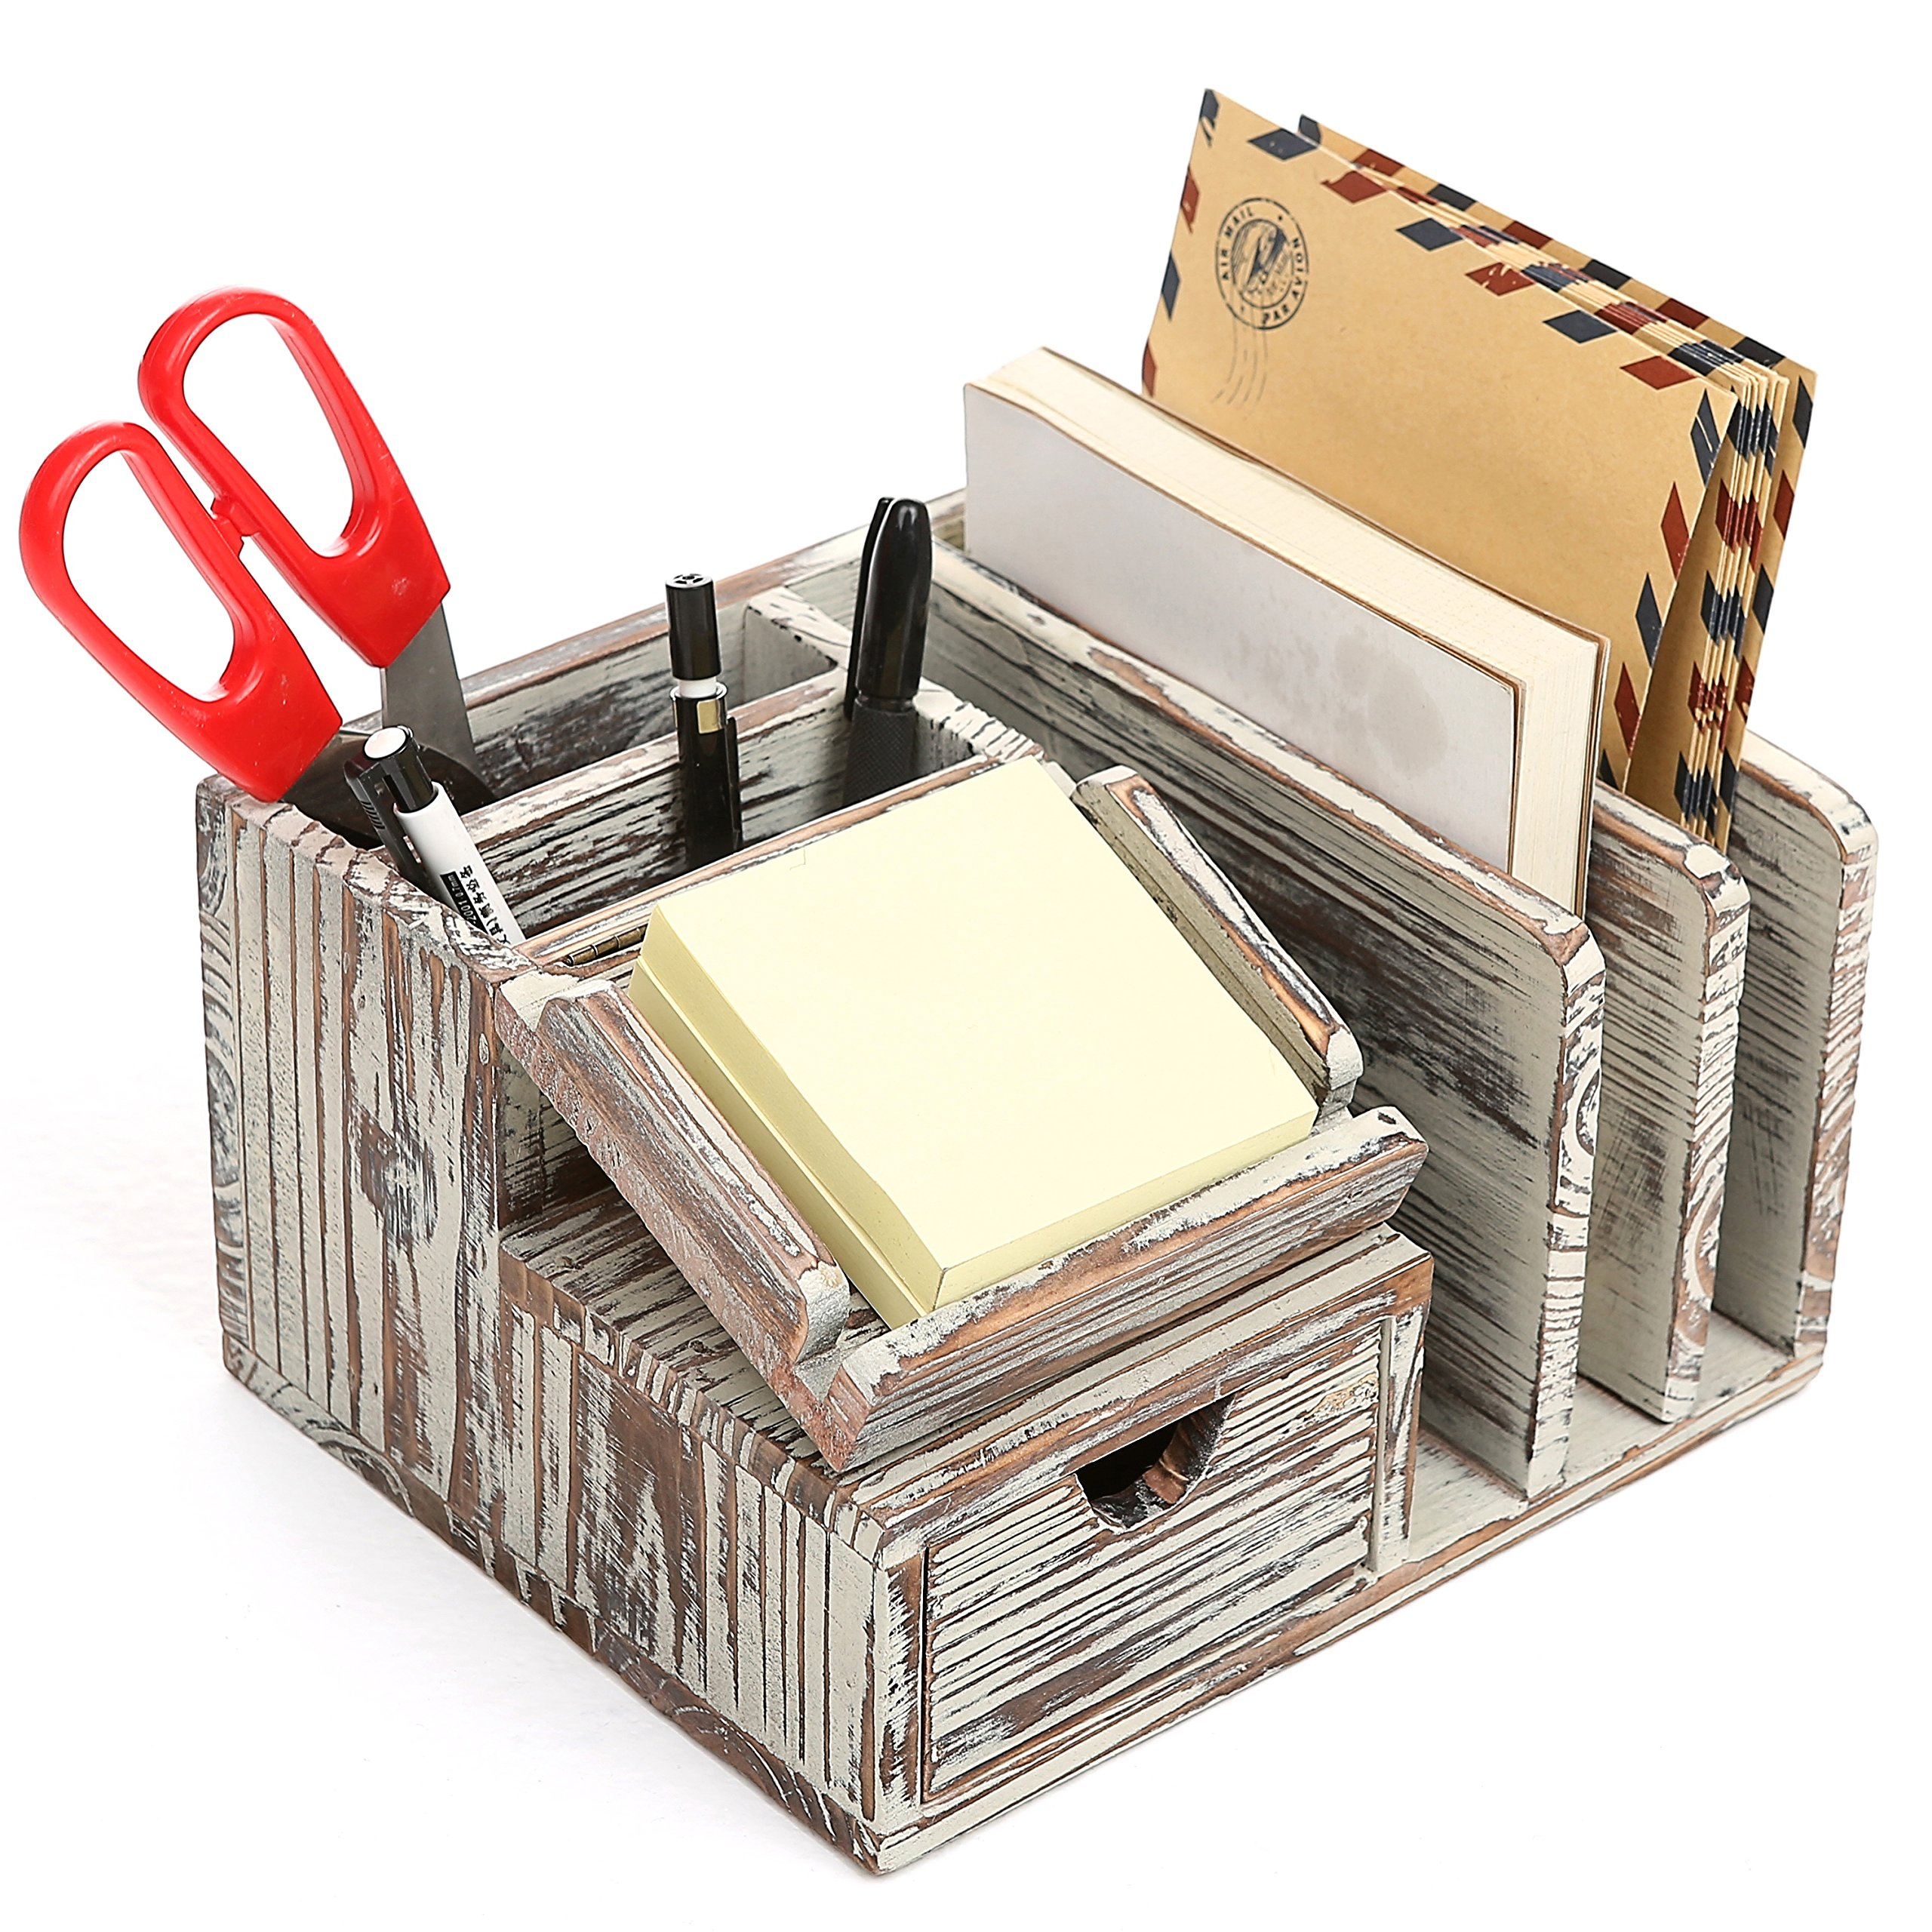 MyGift Torched Wood Desktop Office Organizer w/ Sticky Note Pad Holder, Mail Sorter & Pullout Drawer